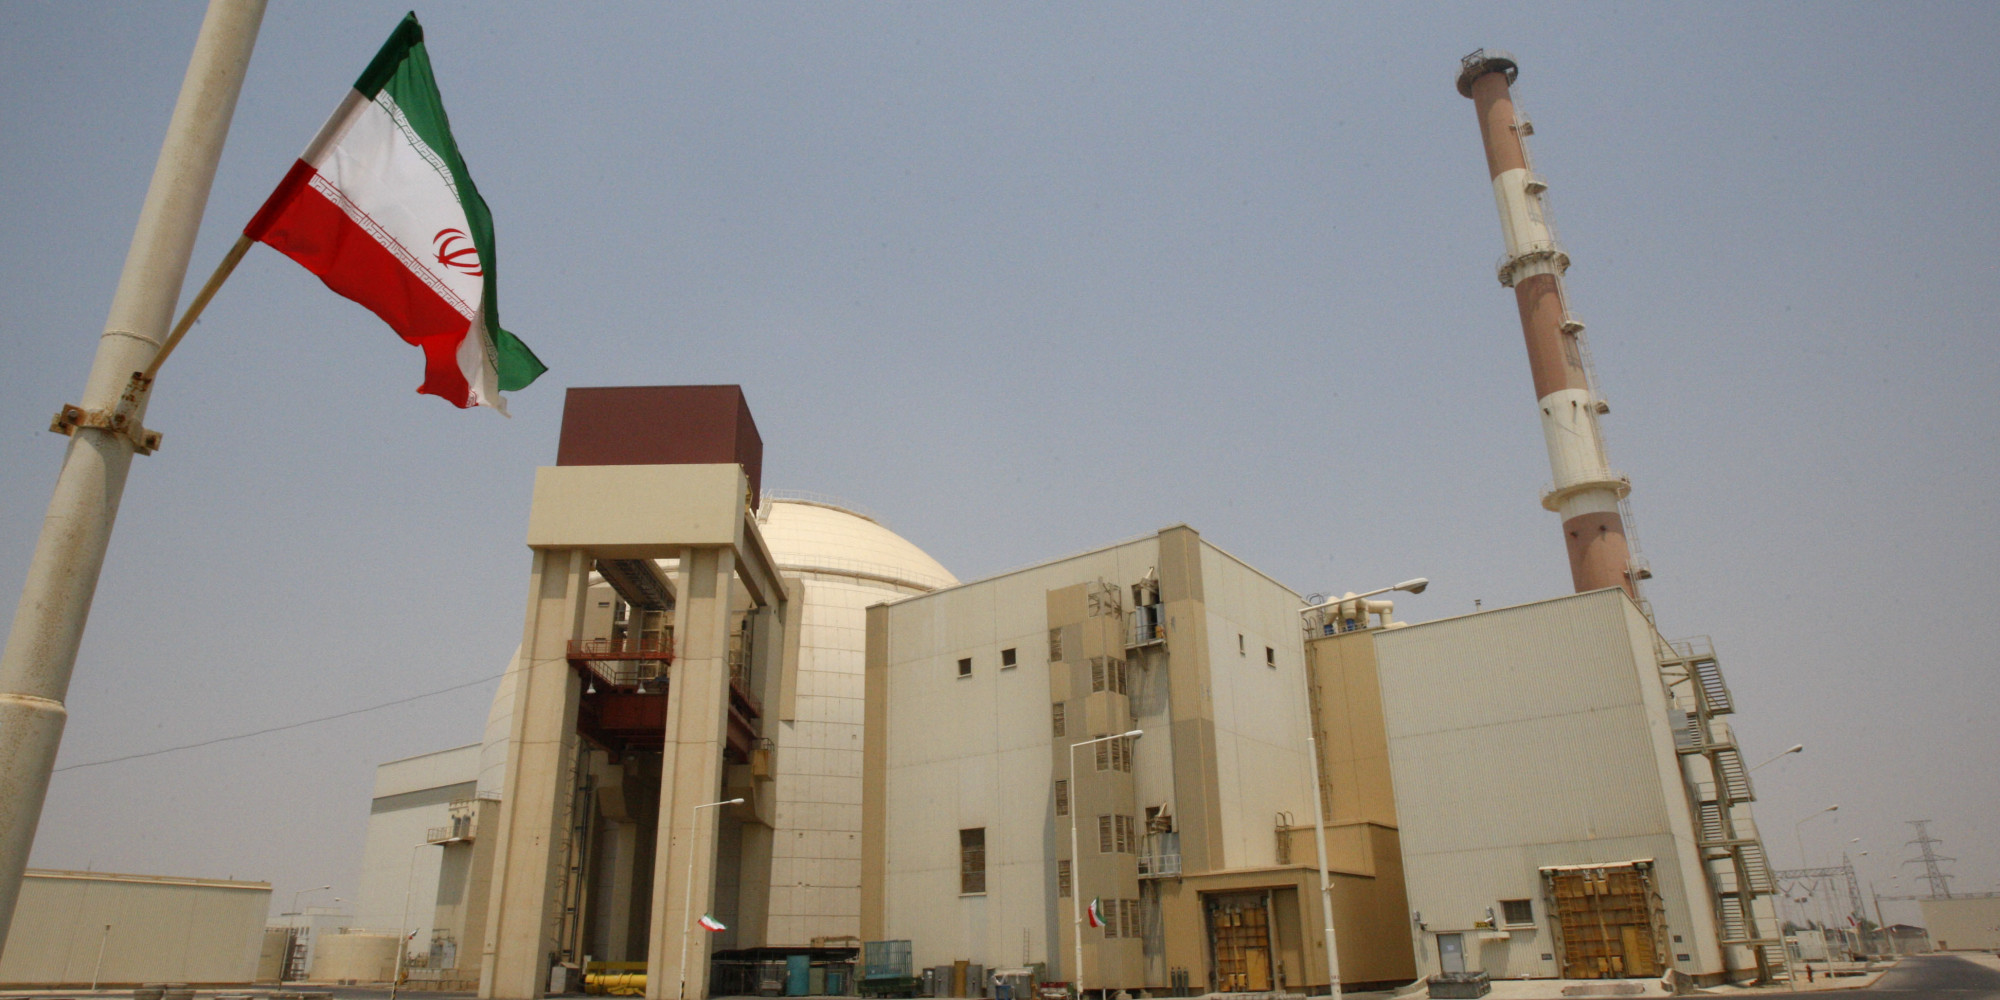 a nuclear iran Observation deck is a nuclear iran a threat or a distraction why the obama administration's focus on negotiations to stop tehran's nuke program overlooks the real problems in the middle east.